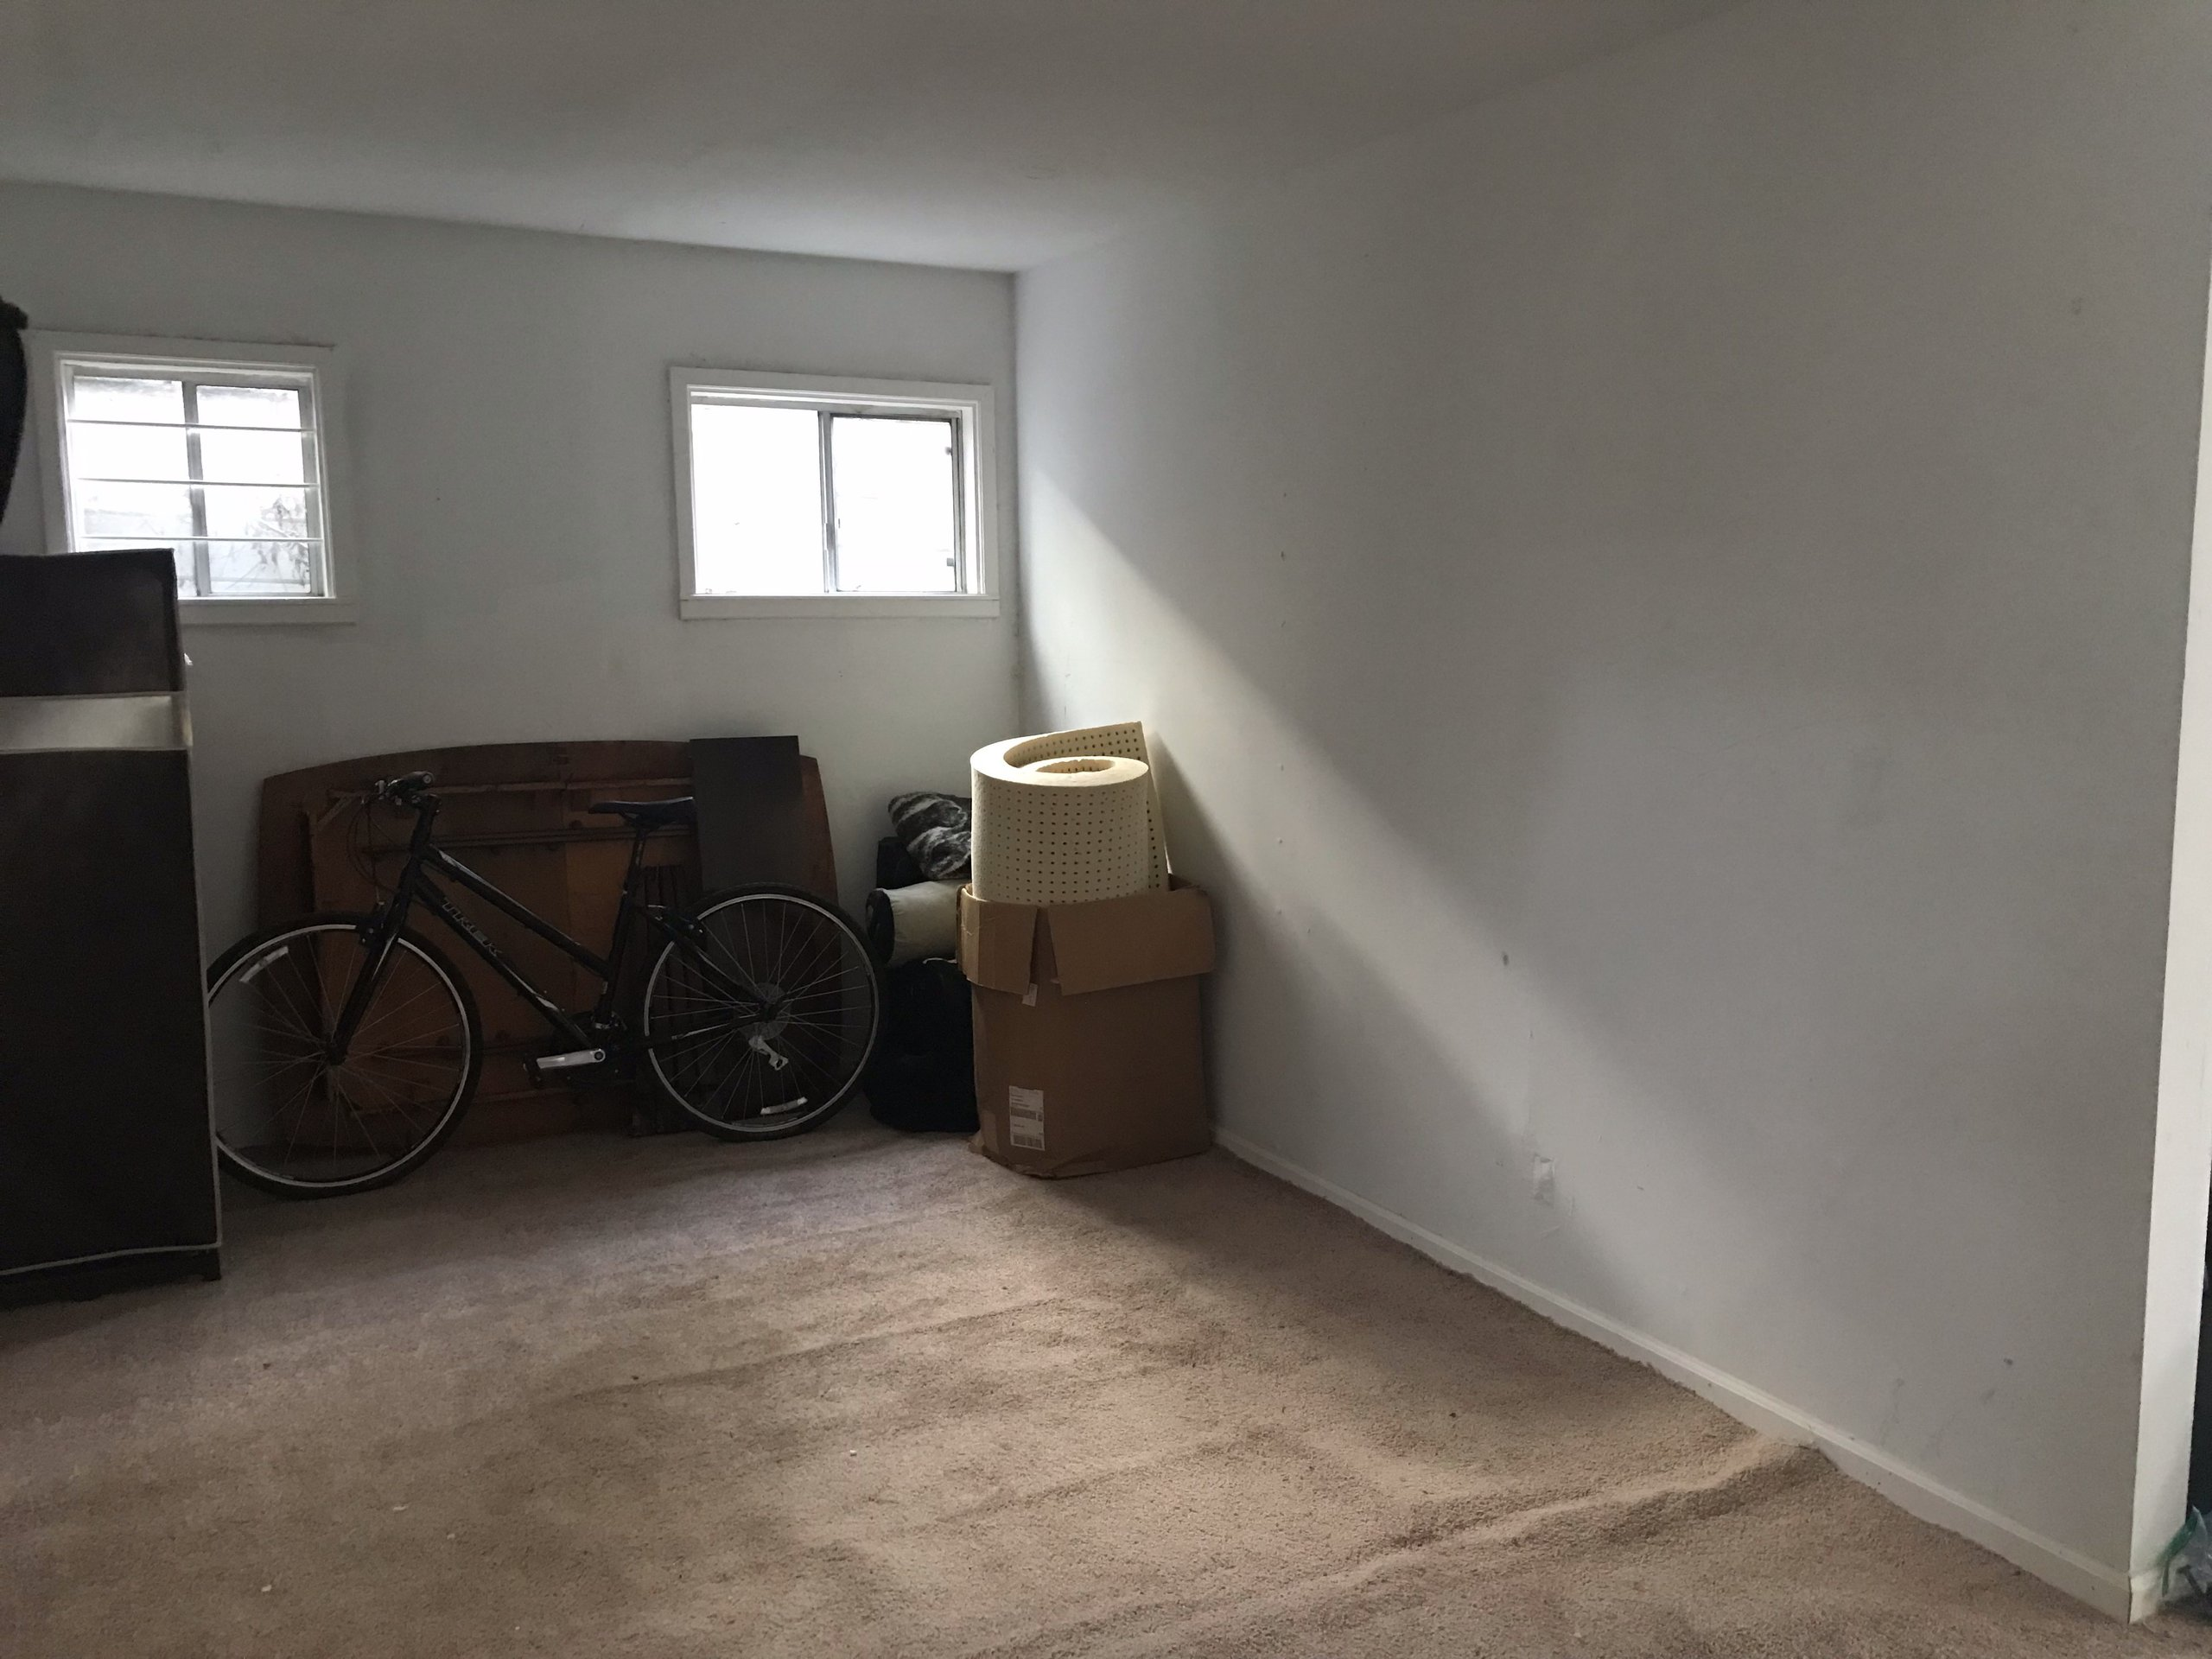 5x5 Bedroom self storage unit